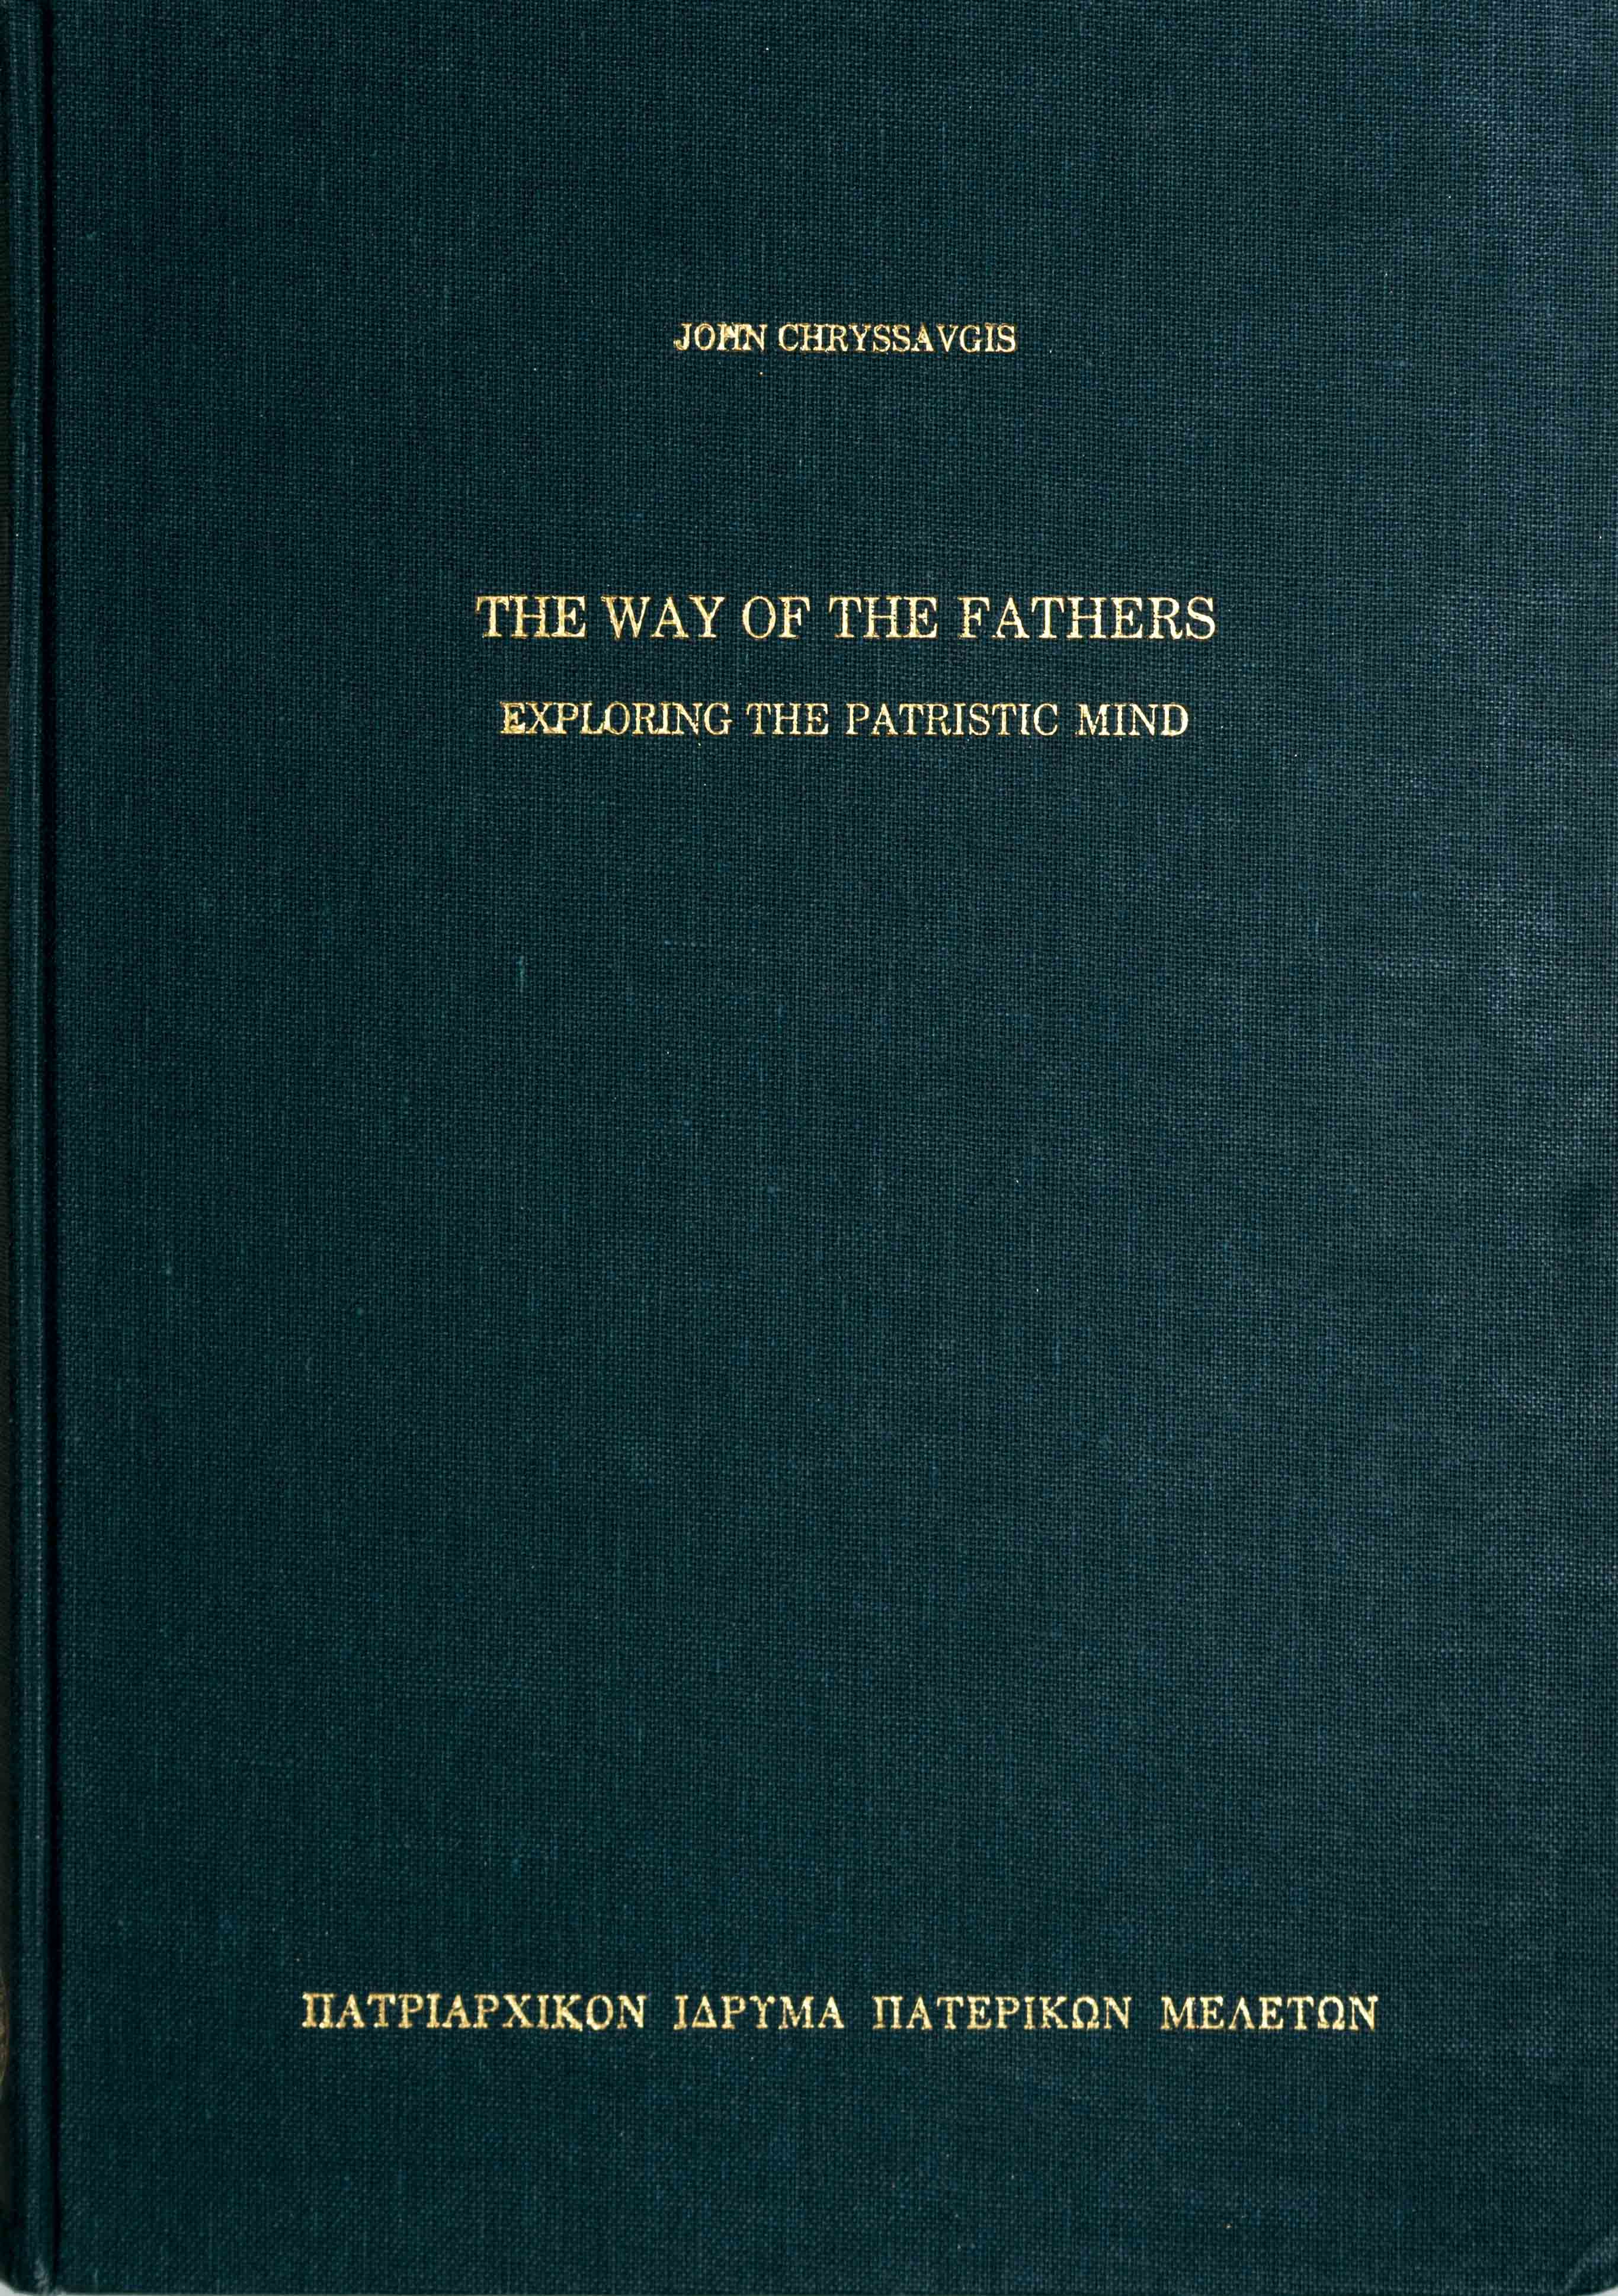 The Way of the Fathers: Exploring the Patristic Mind